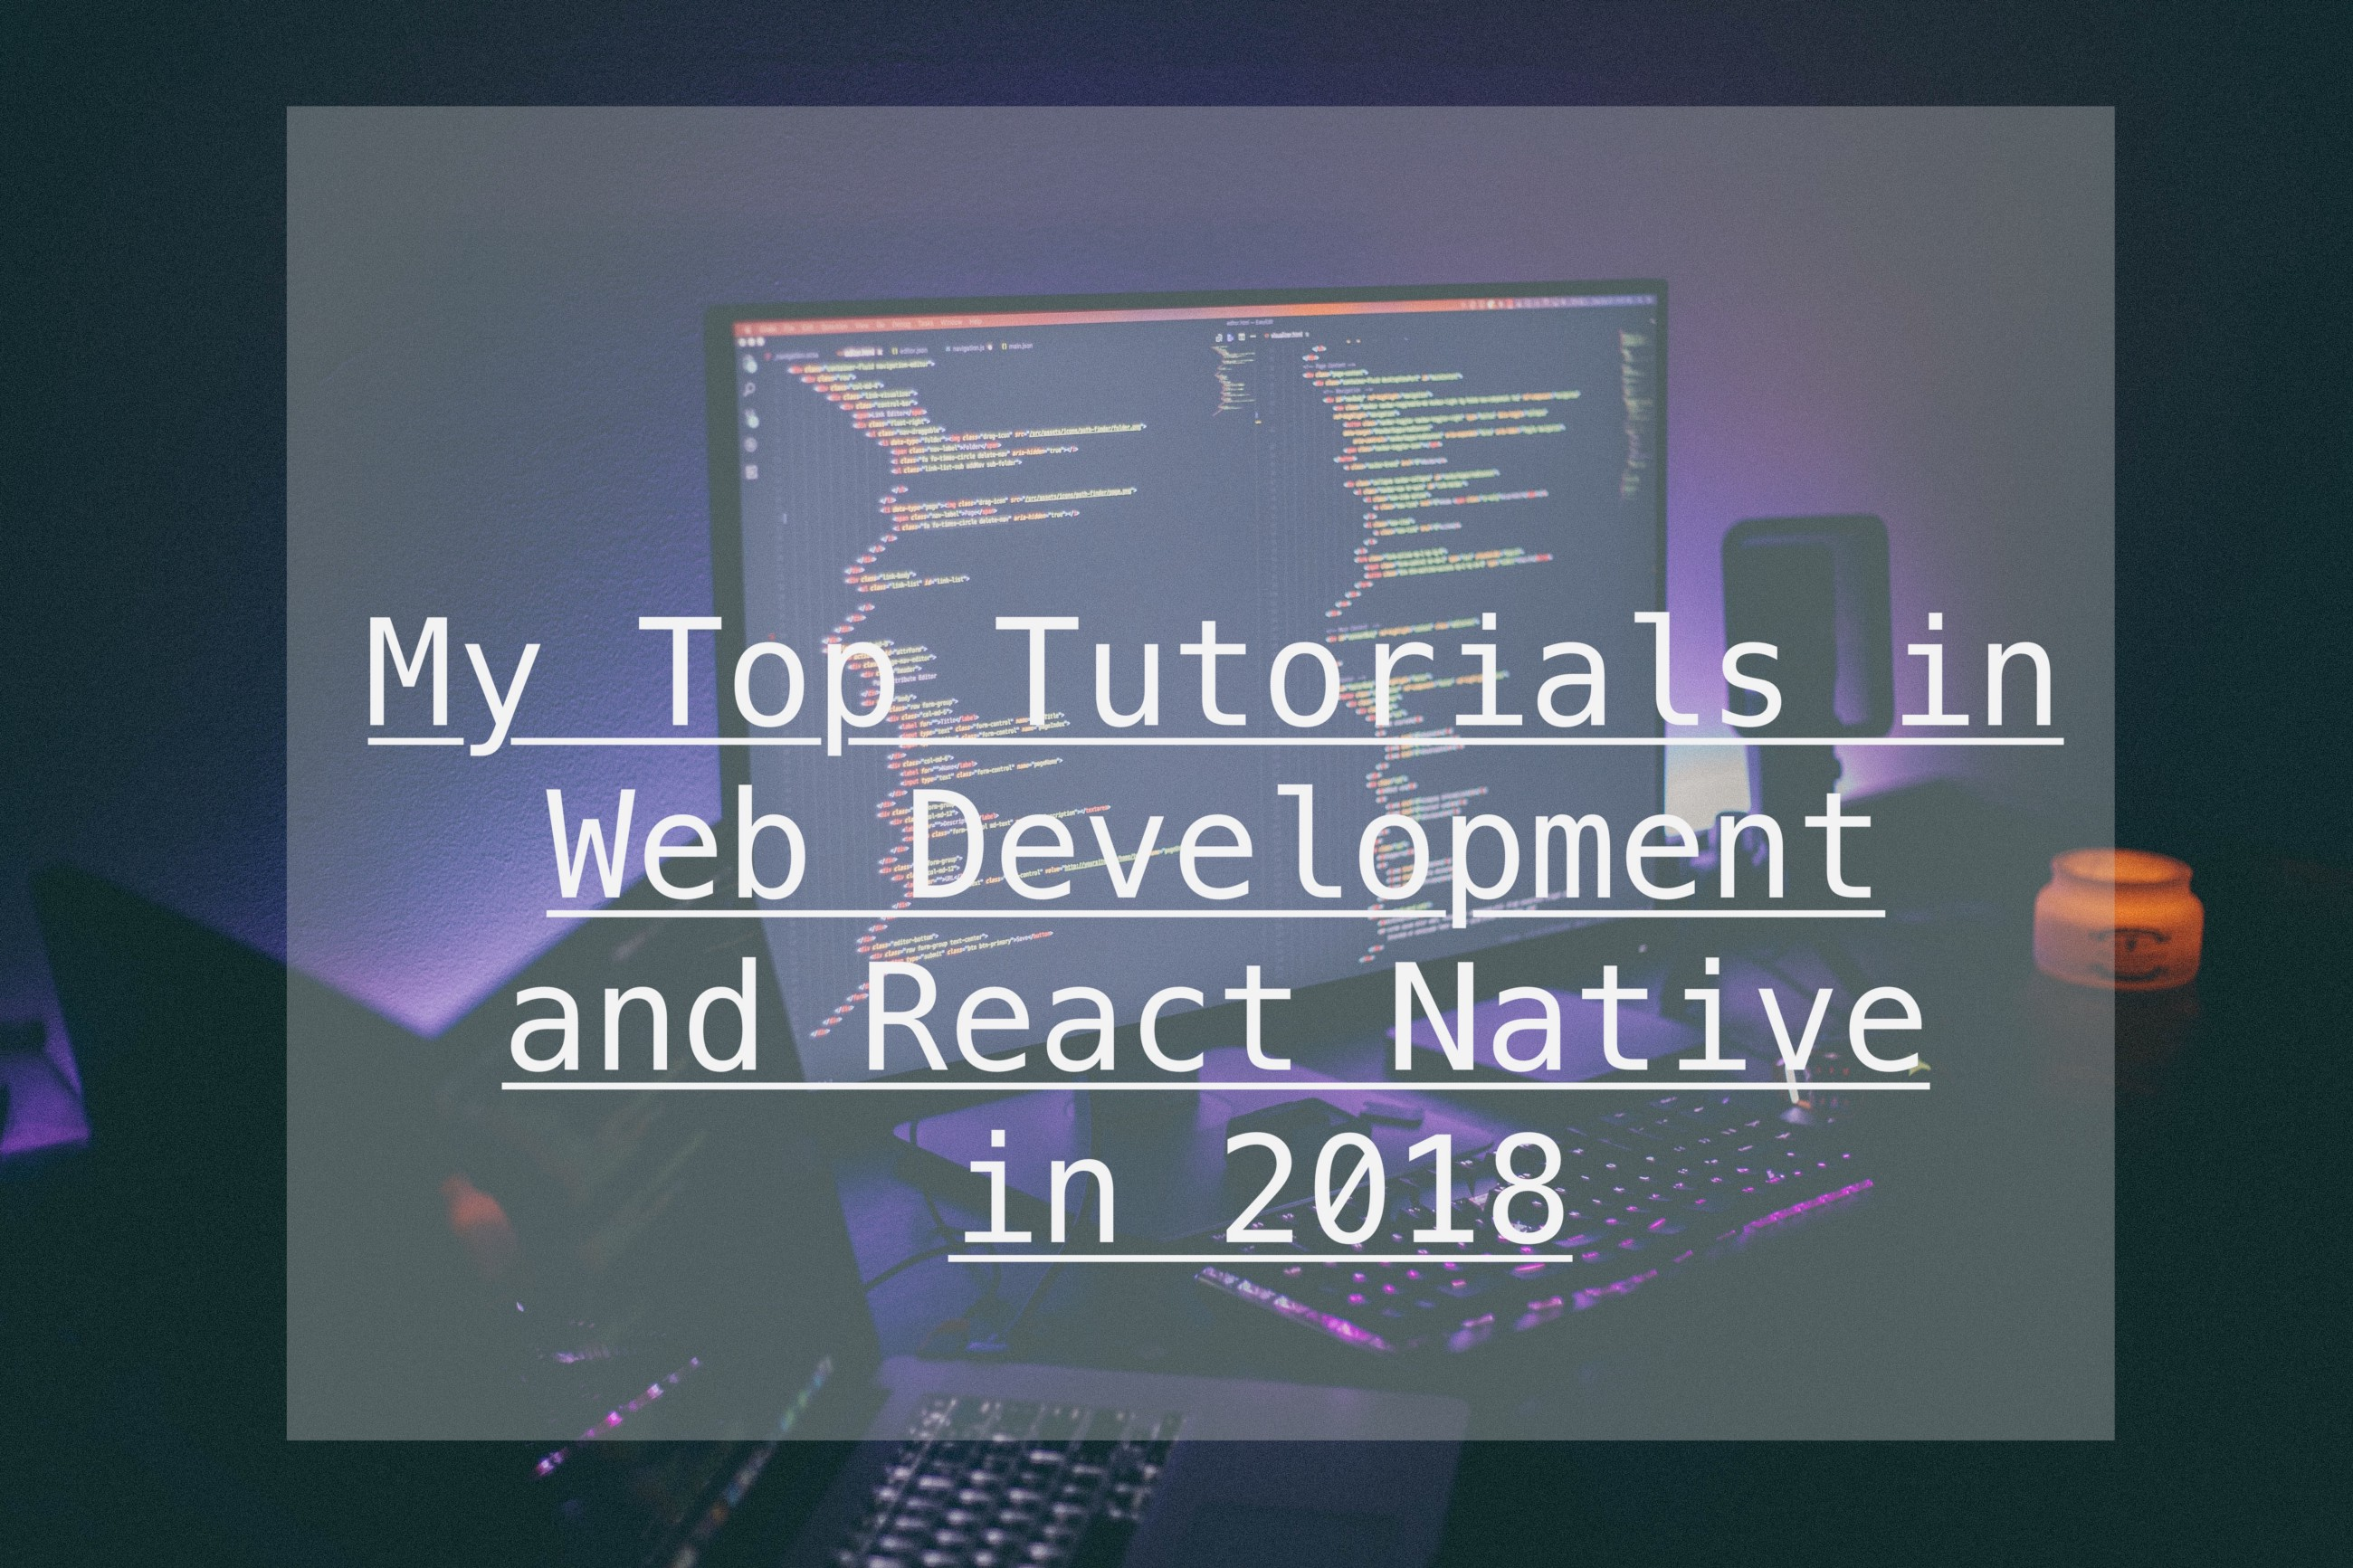 My Top Tutorials in Web Development and React Native in 2018